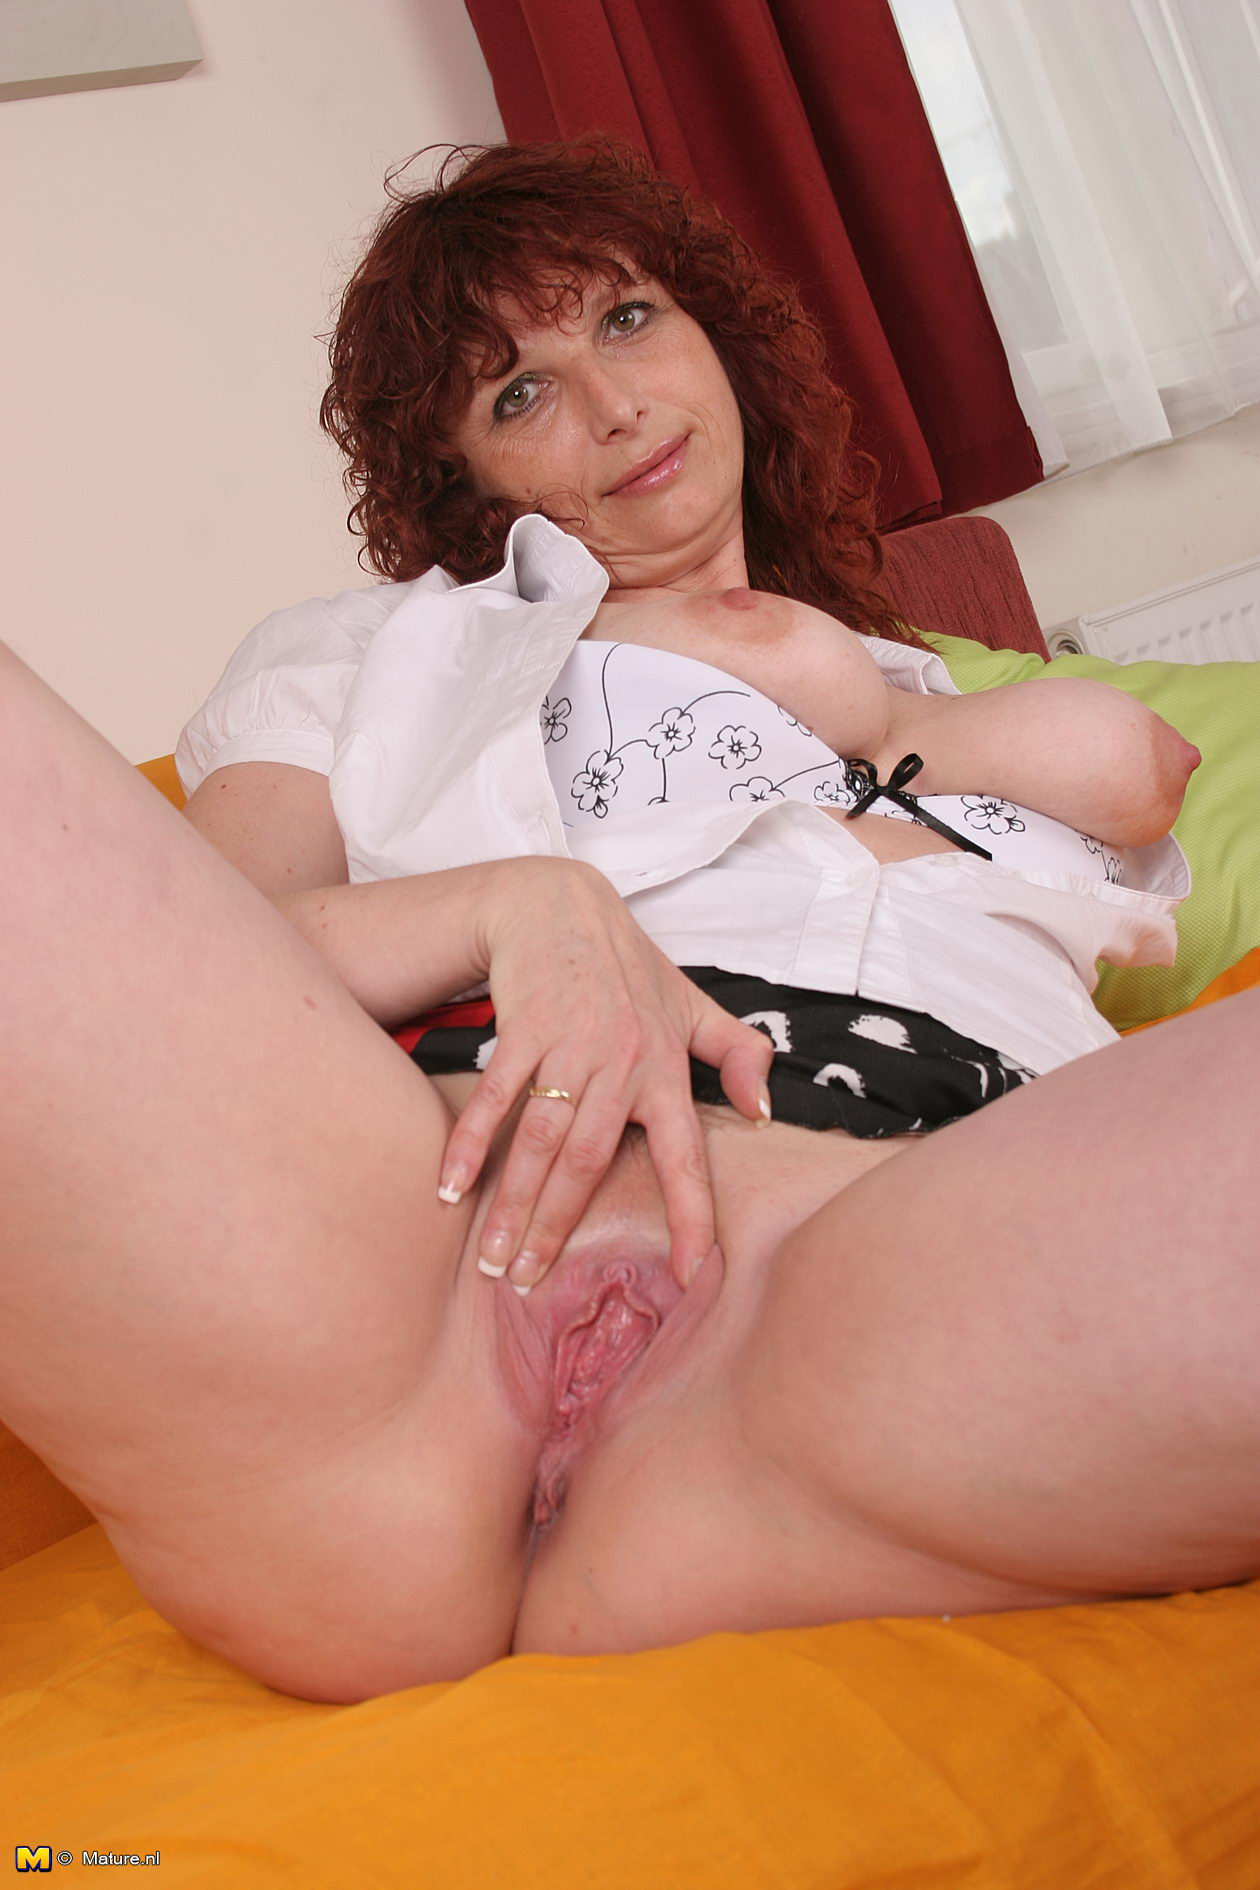 free mature pic redhead - adult gallery